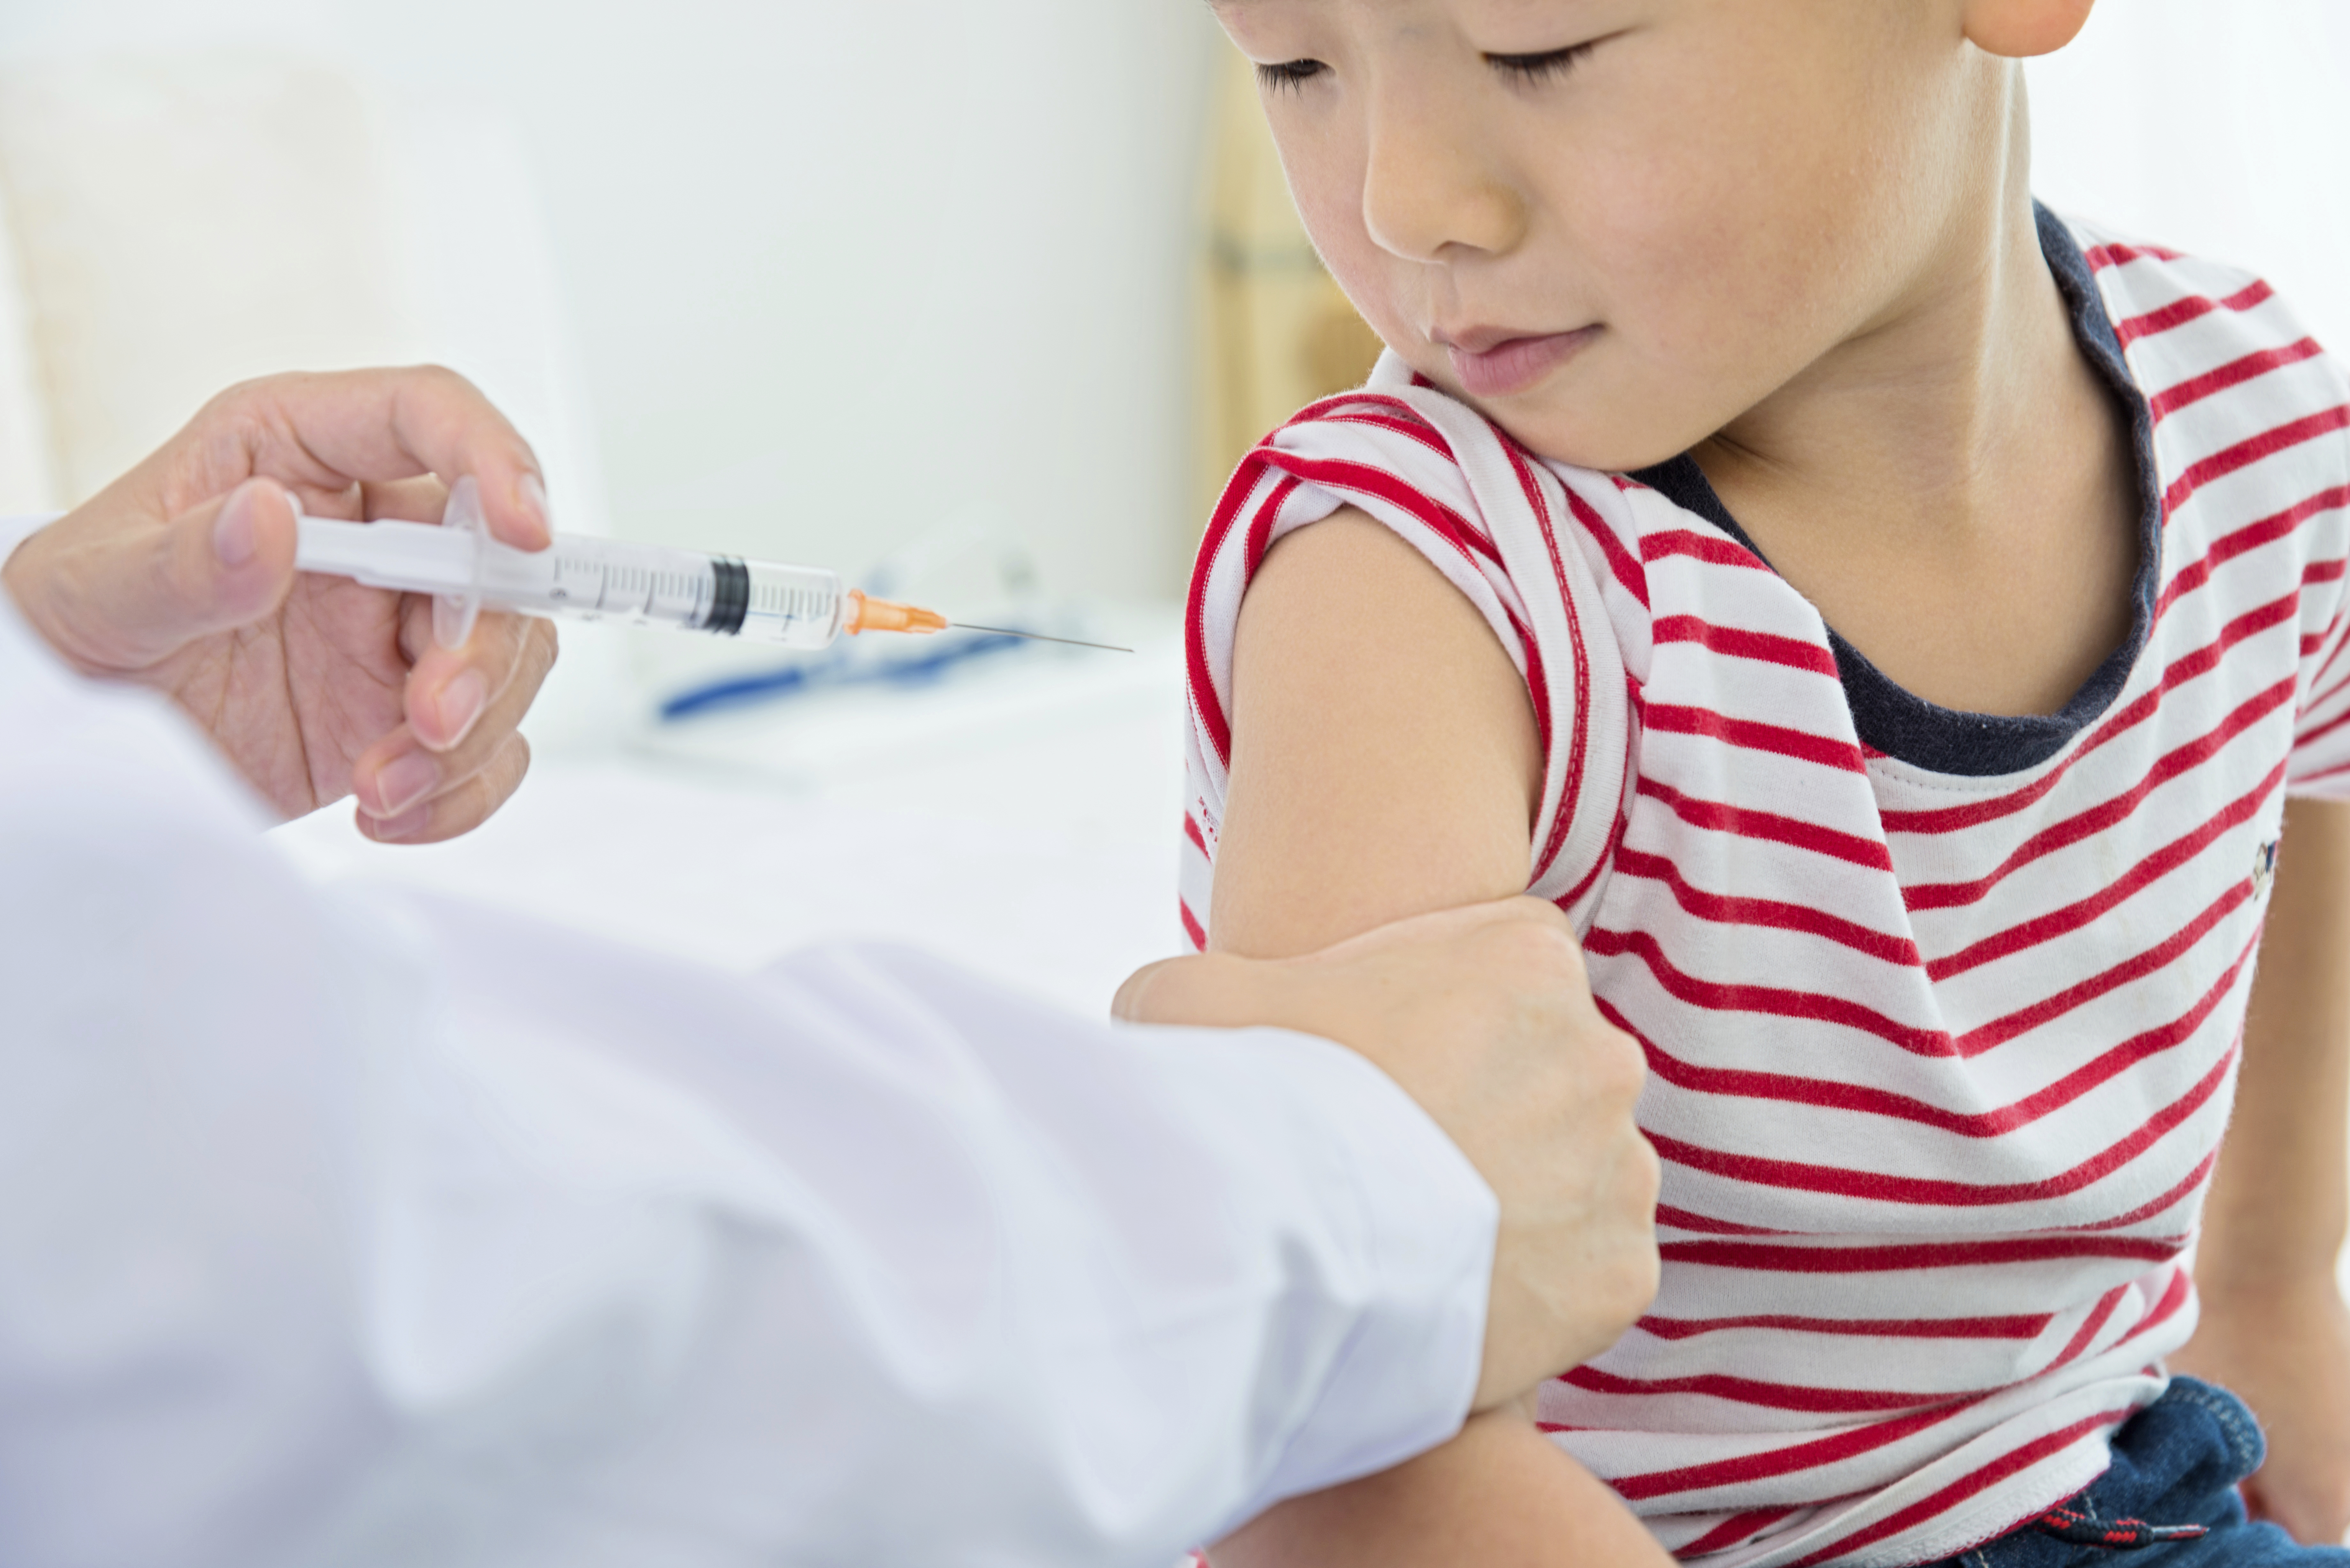 A young boy receives his vaccination with equanimity.